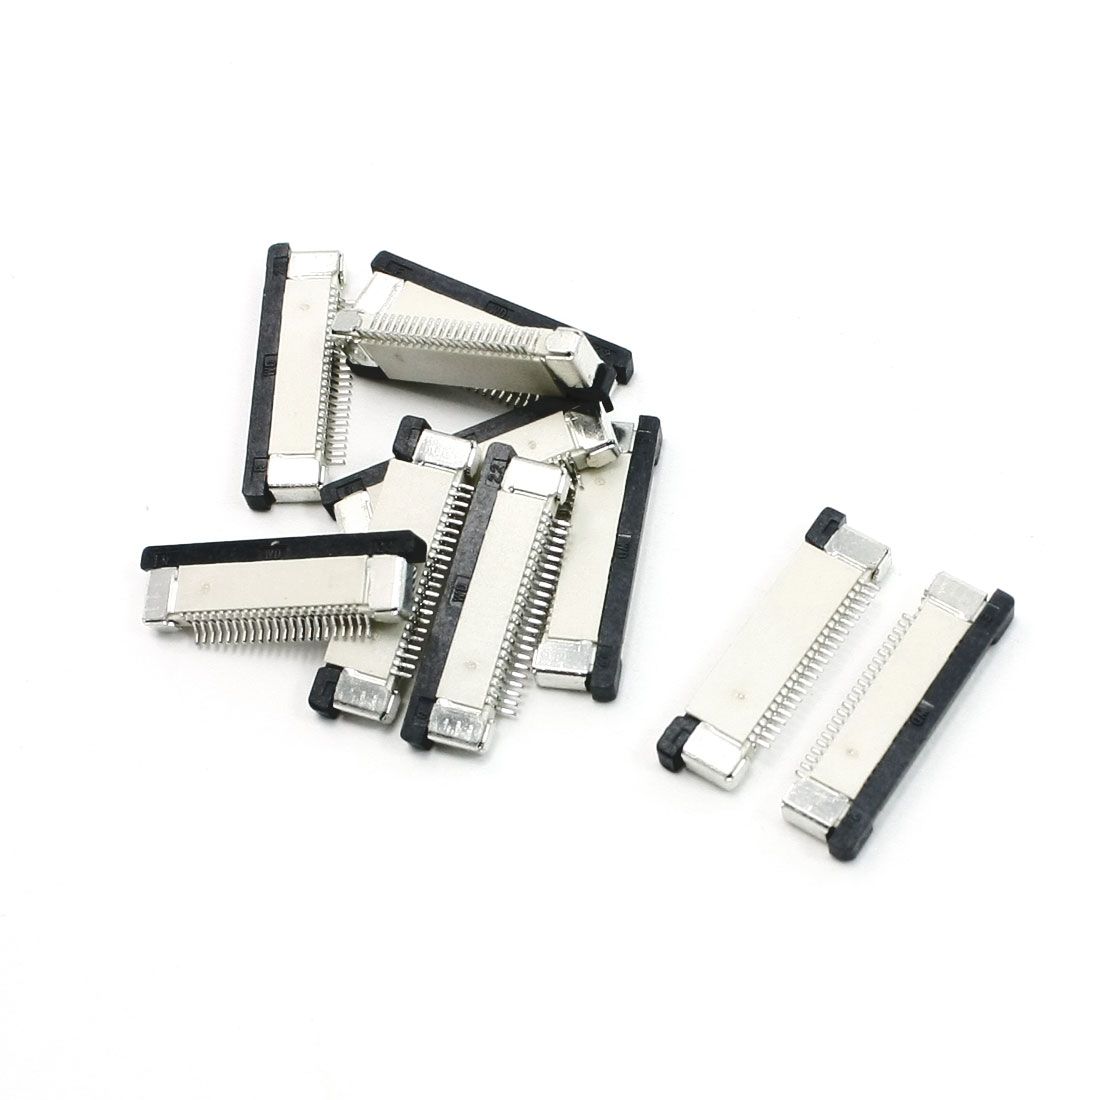 10 Pcs FFC FPC Bottom Connect 0.5mm Pitch Ribbon Connector Socket